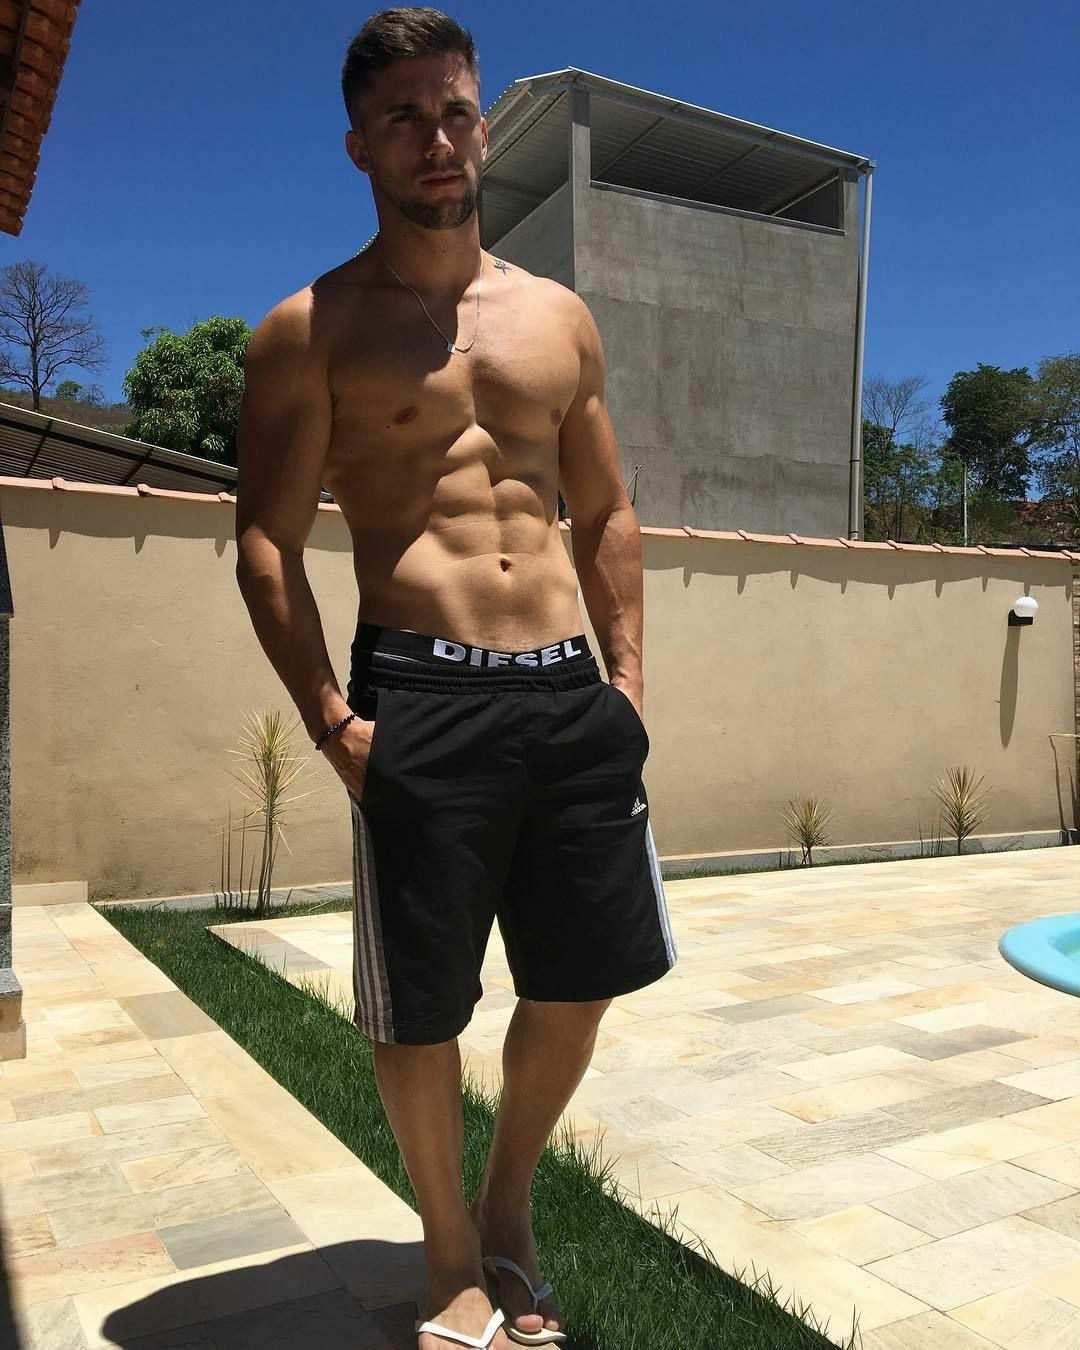 The Art of the Male Body | Gym men, Mens gym short, Male body